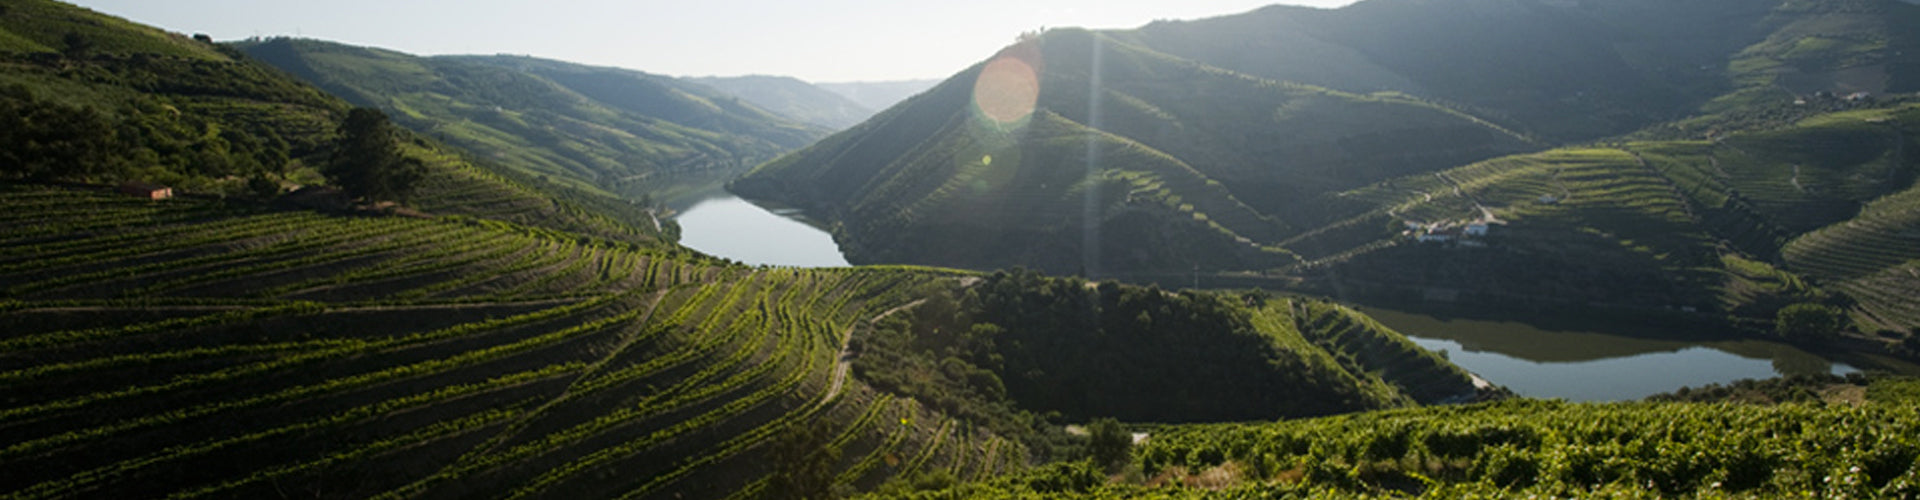 Ferreira Vineyards in the Douro Valley, Portugal